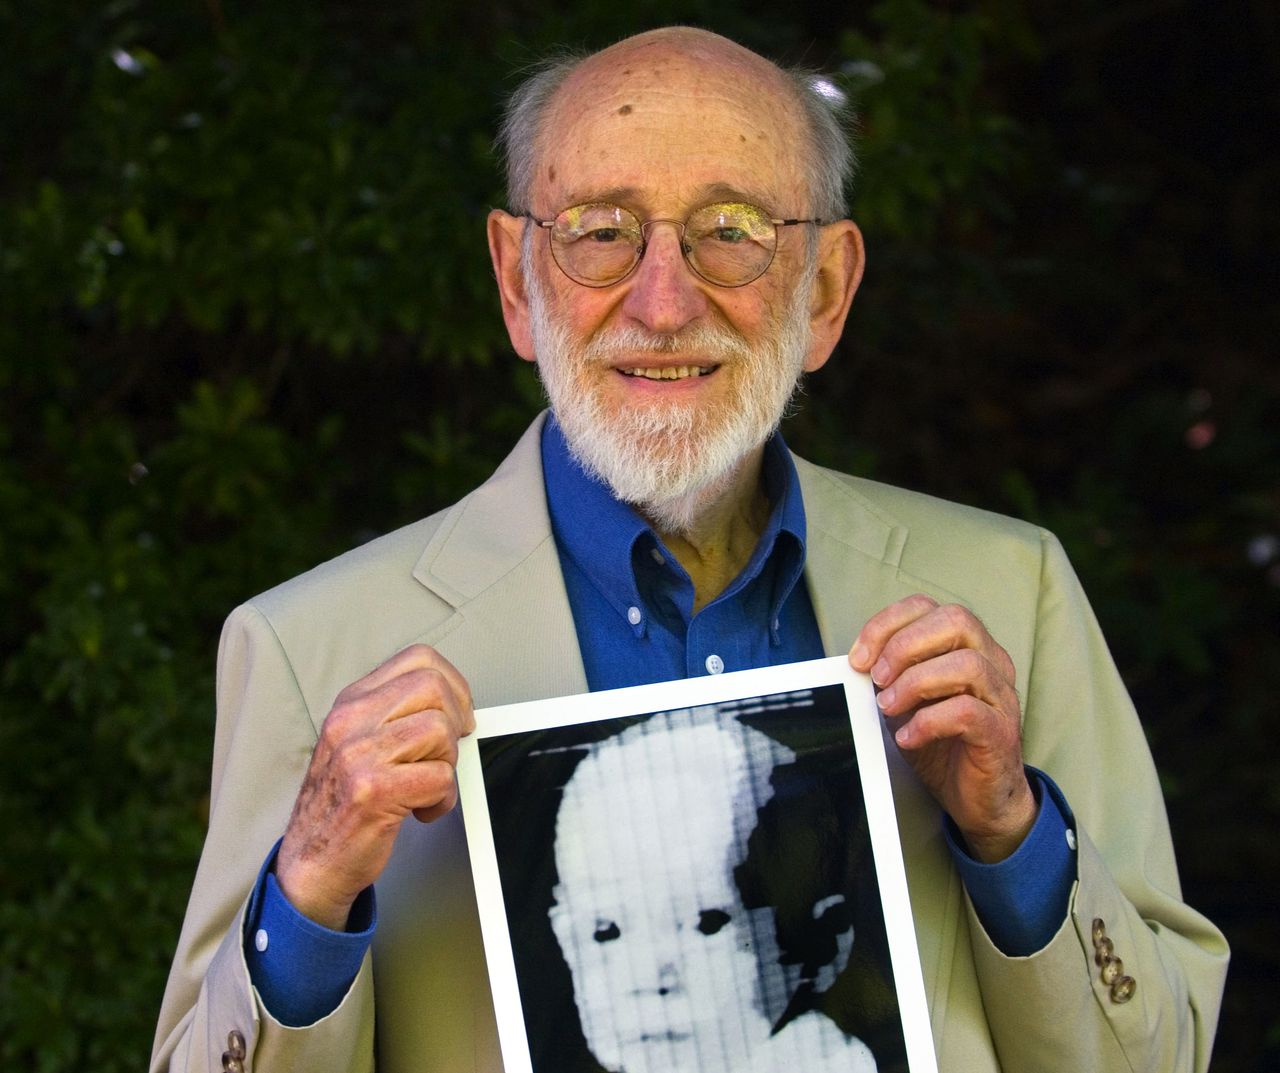 Russell Kirsch, inventor of the pixel, dies in Oregon at age 91